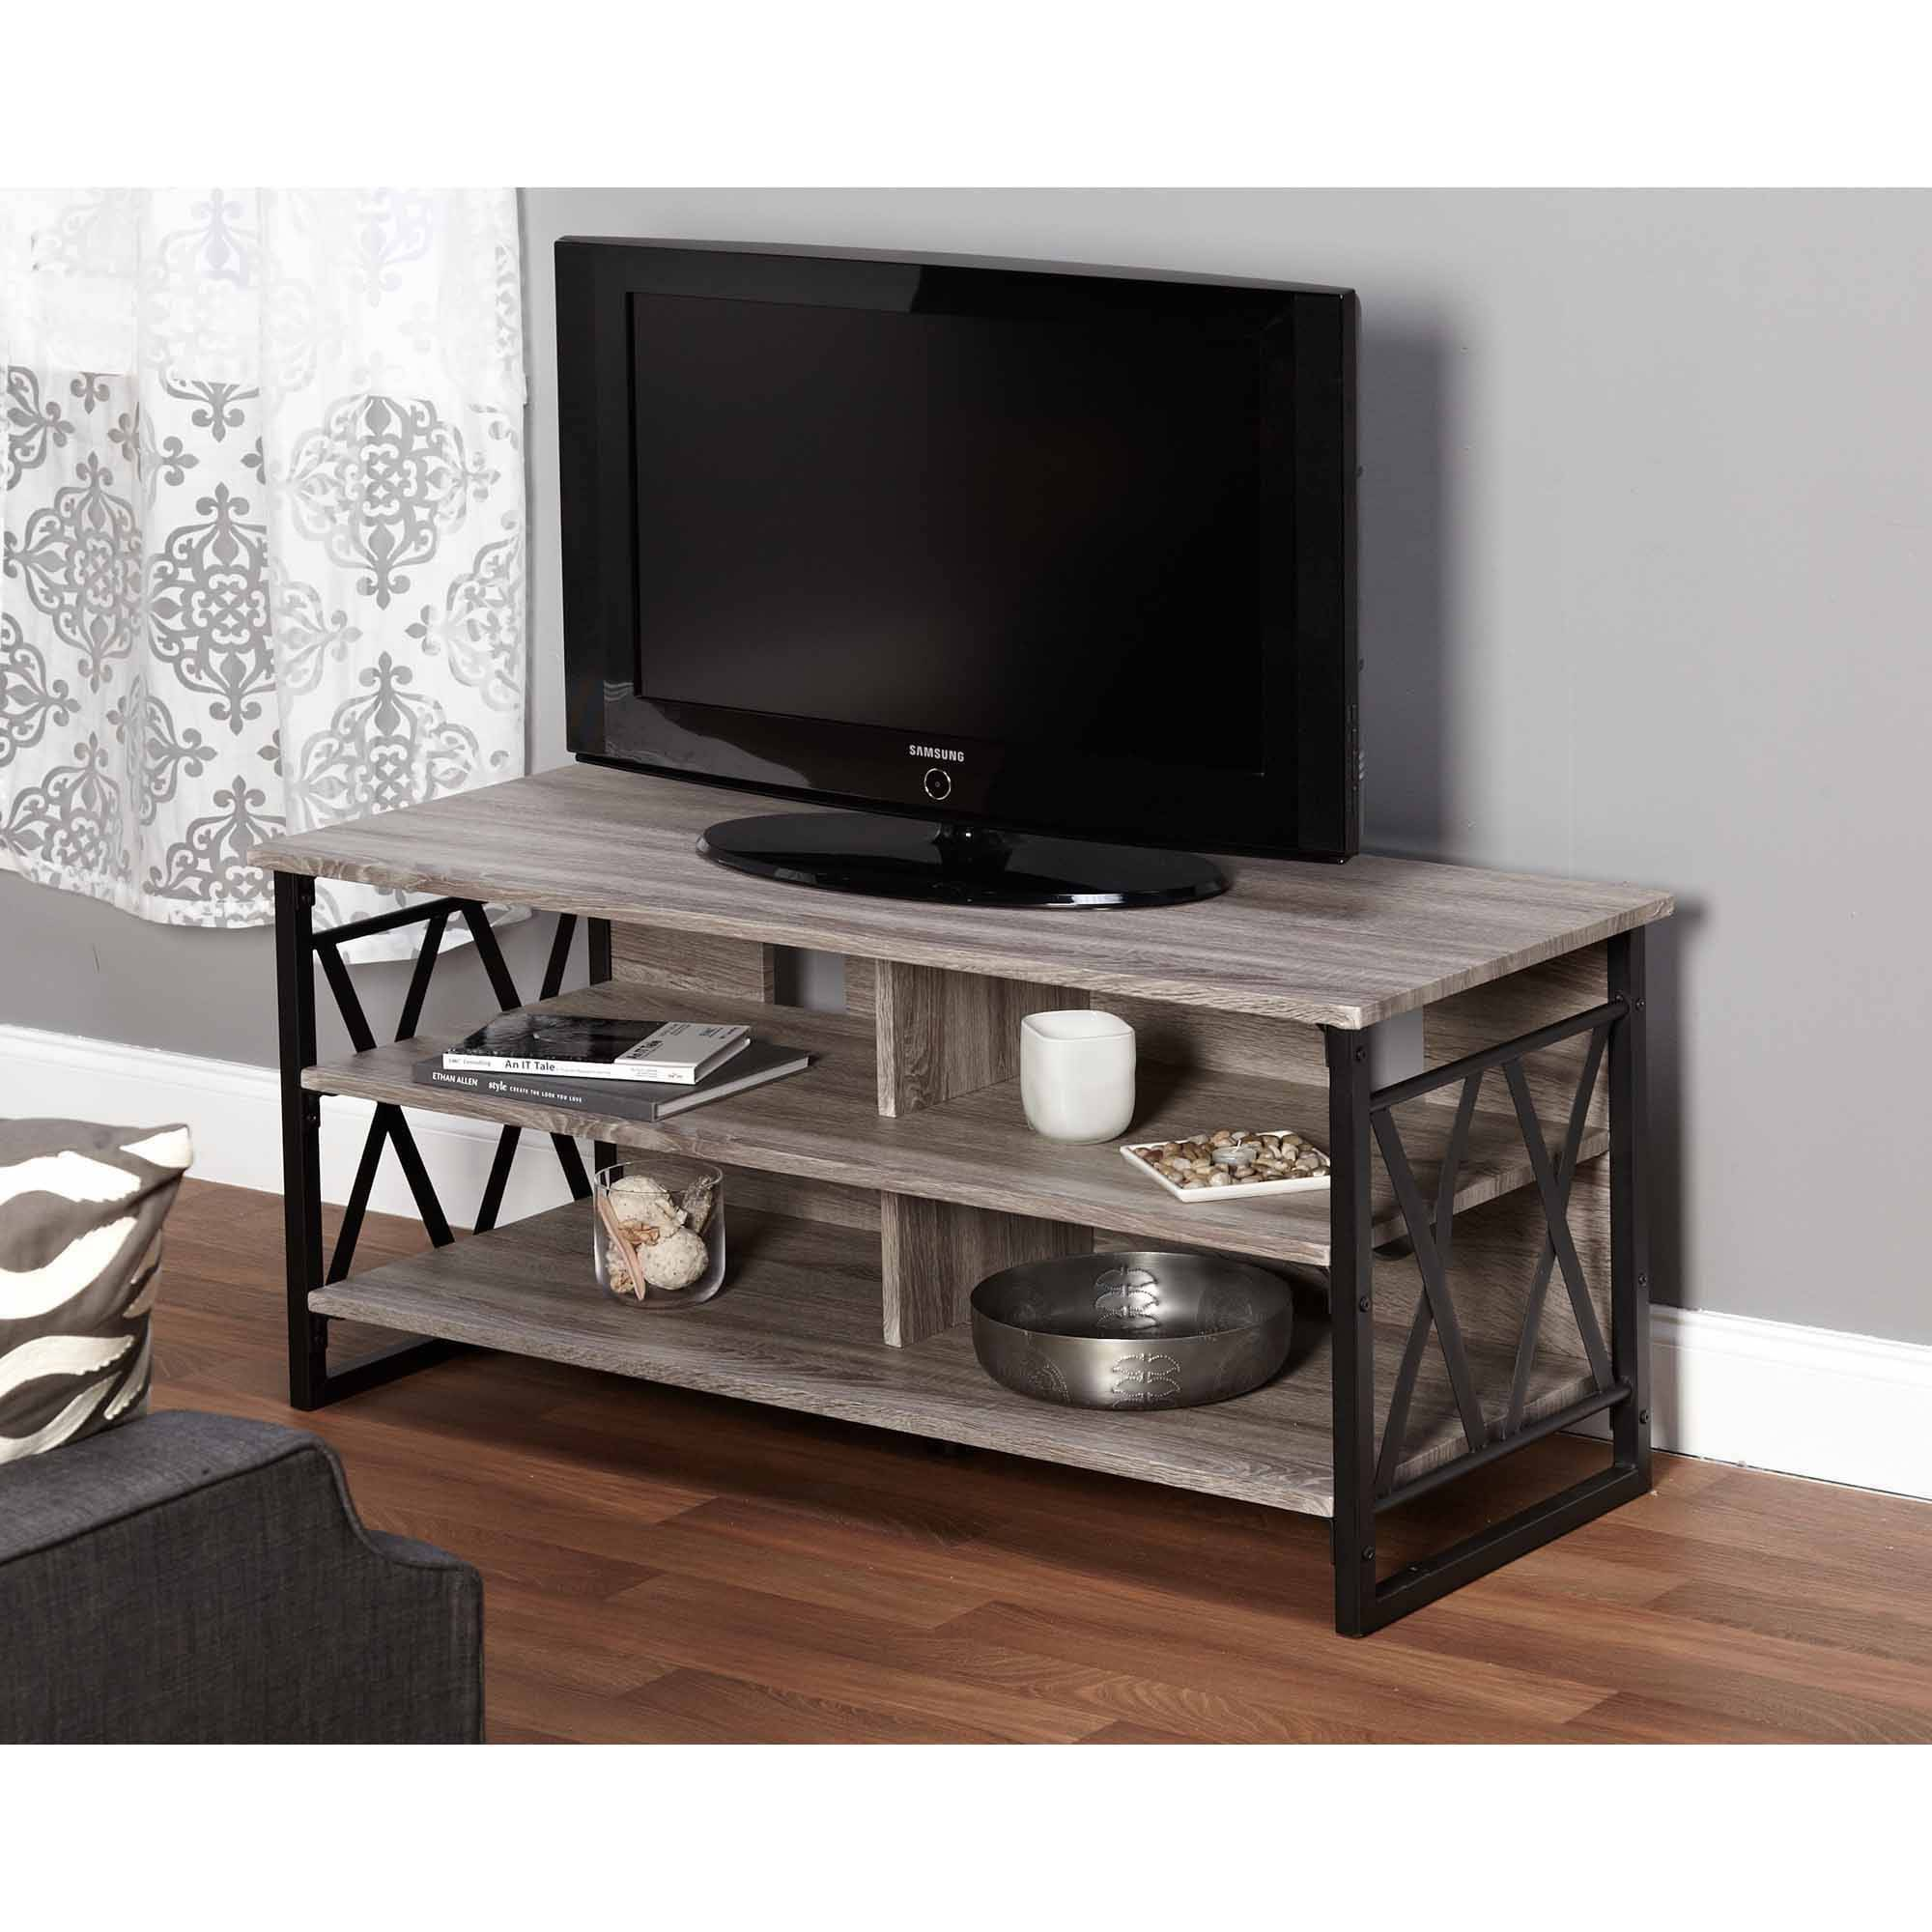 "LenyXX Collection TV Stand for TVs up to 48"", Multiple Finishes"